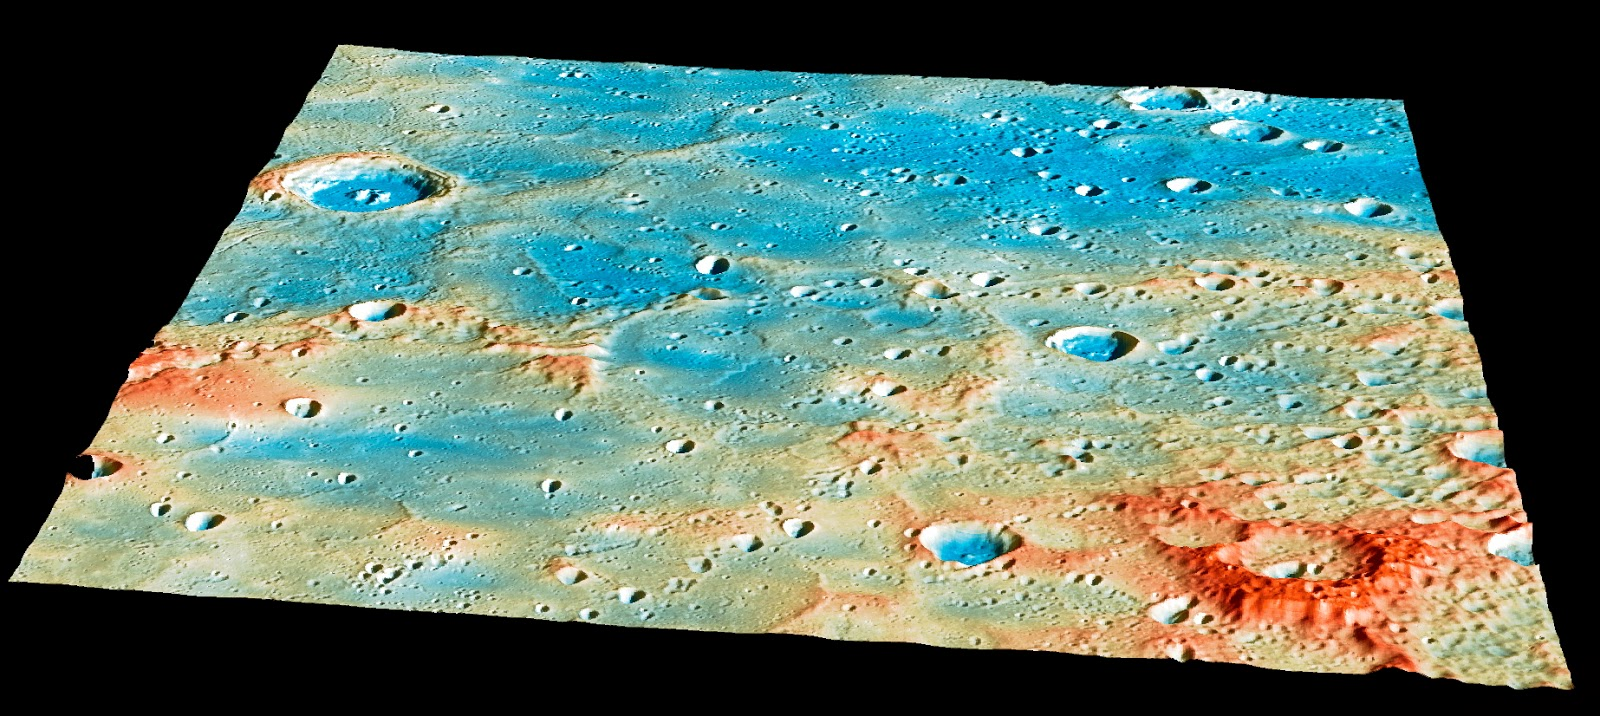 Overview of the MESSENGER's impact region. Credit: NASA/Johns Hopkins University Applied Physics Laboratory/Carnegie Institution of Washington